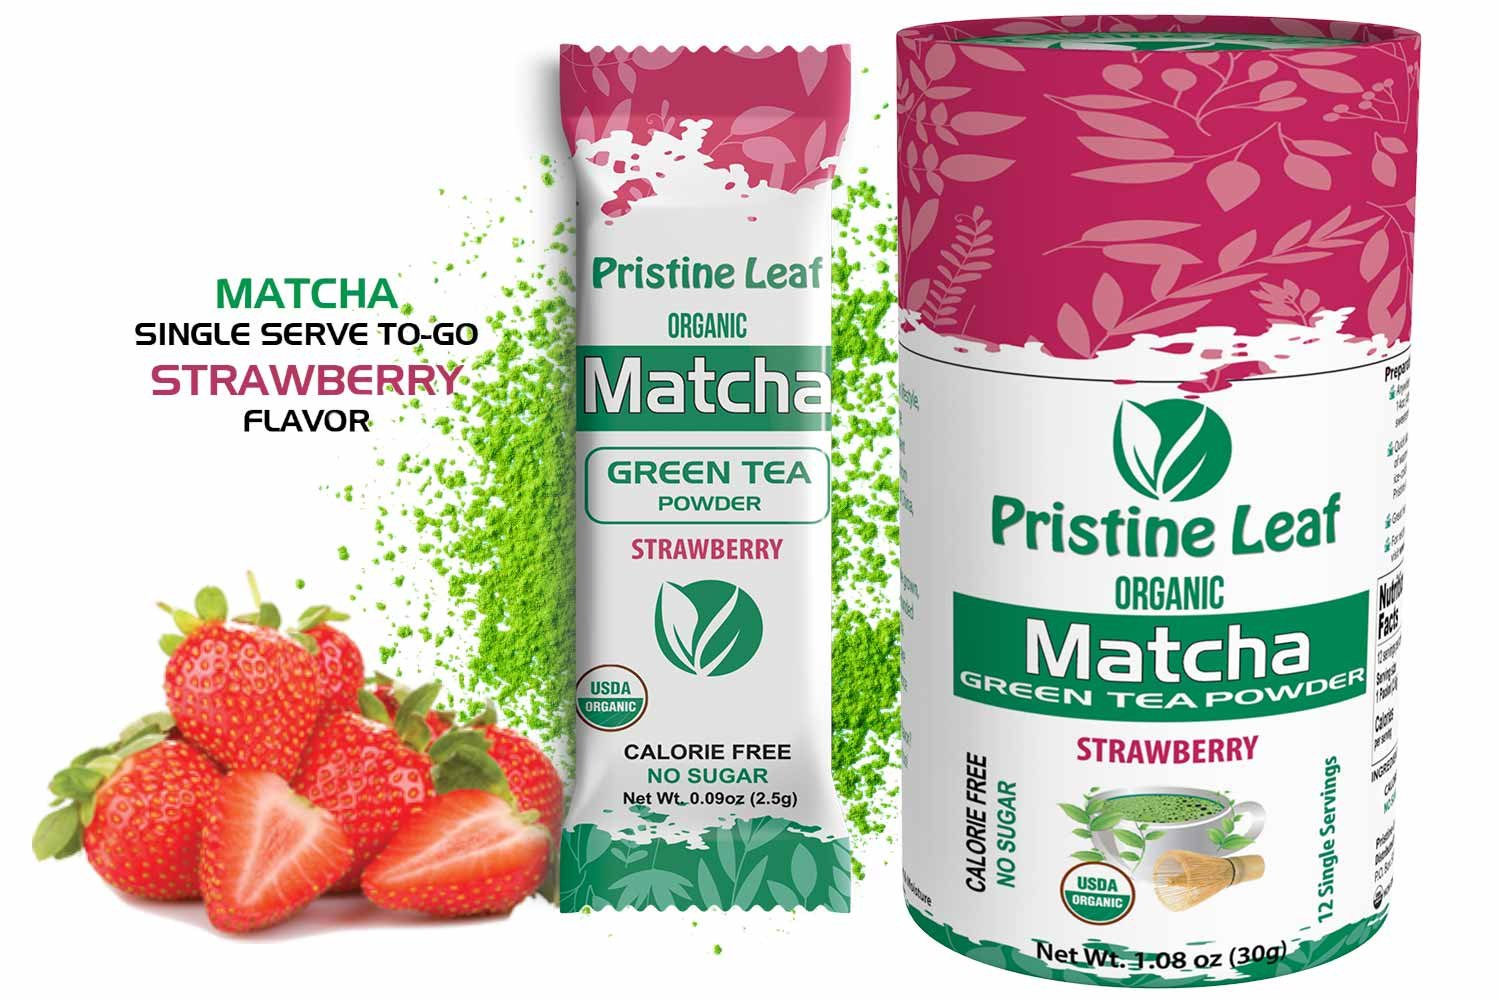 Pristine Leaf Organic Matcha Green Tea Powder, Strawberry Flavored, 12 Single Serving Packs Anytime Anywhere To Go, No Sugar, No Fillers, No Additives, All Natural, Calorie Free, Vegan, Gluten Free by Pristine Leaf